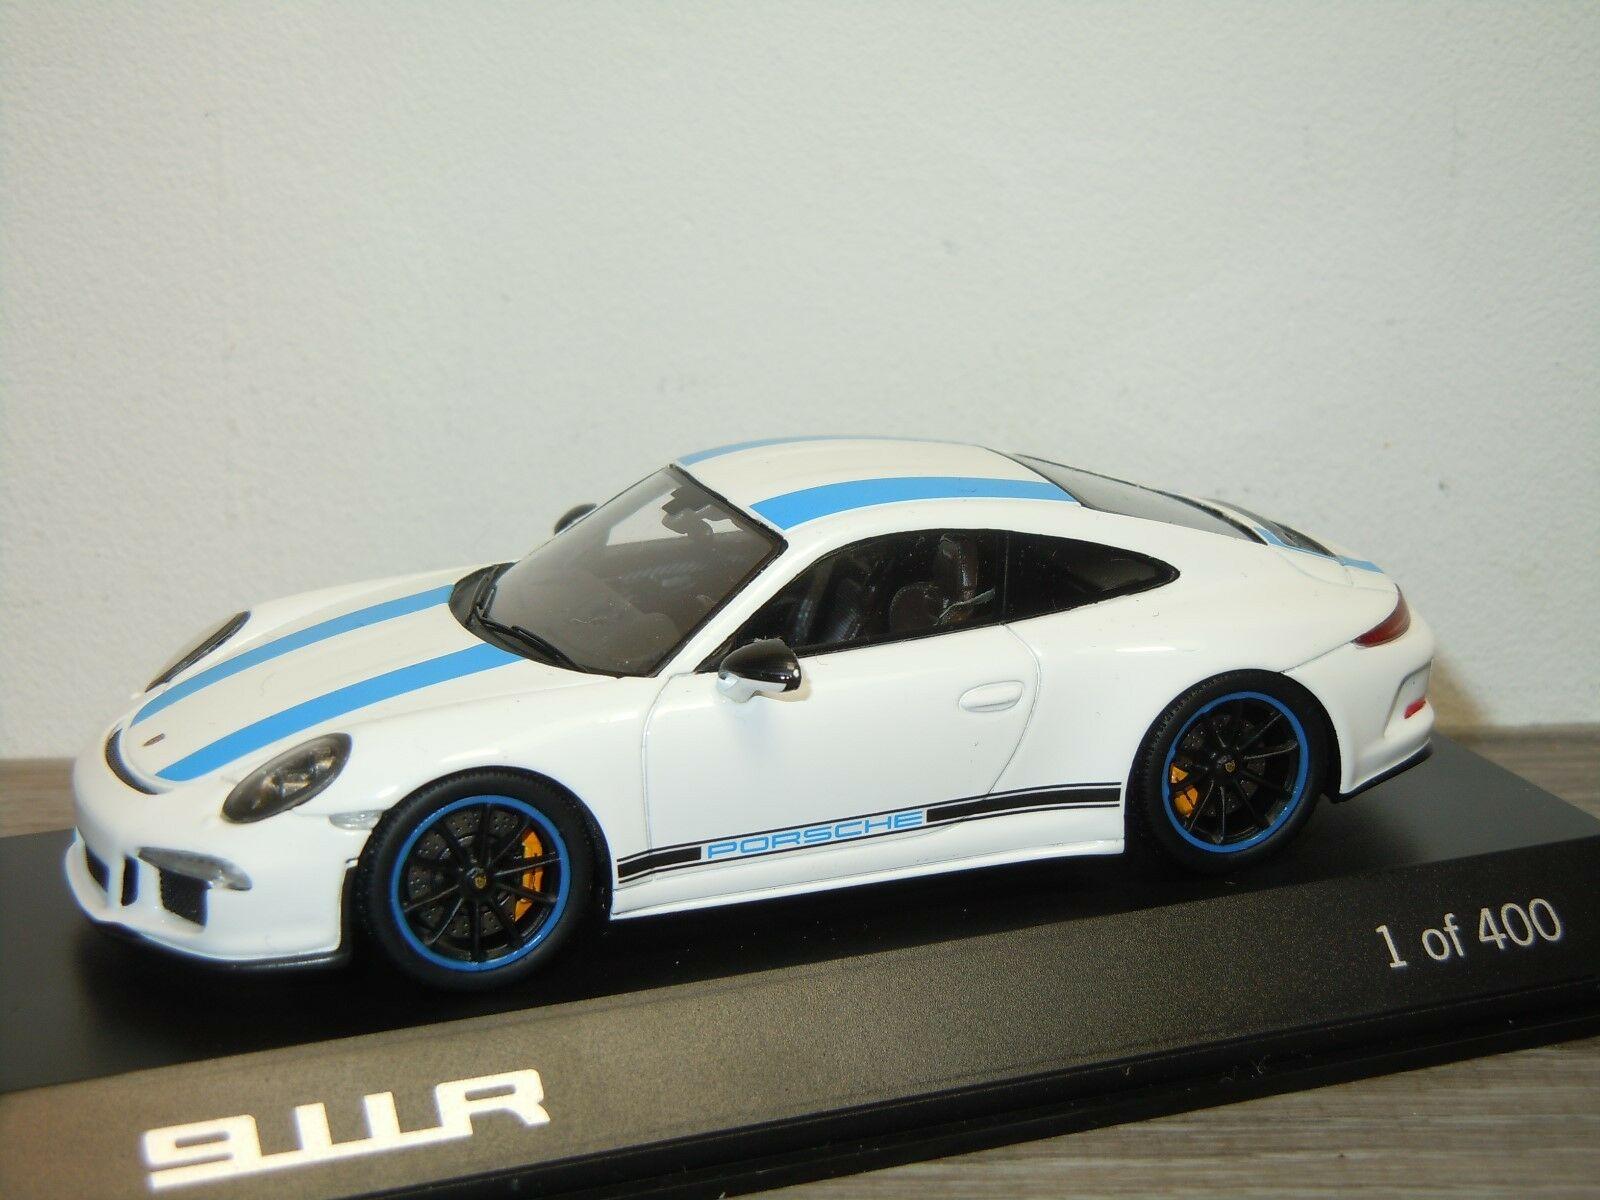 Porsche 911 991 R Coupe - Spark 1 43 in Box 1 400pcs 34045